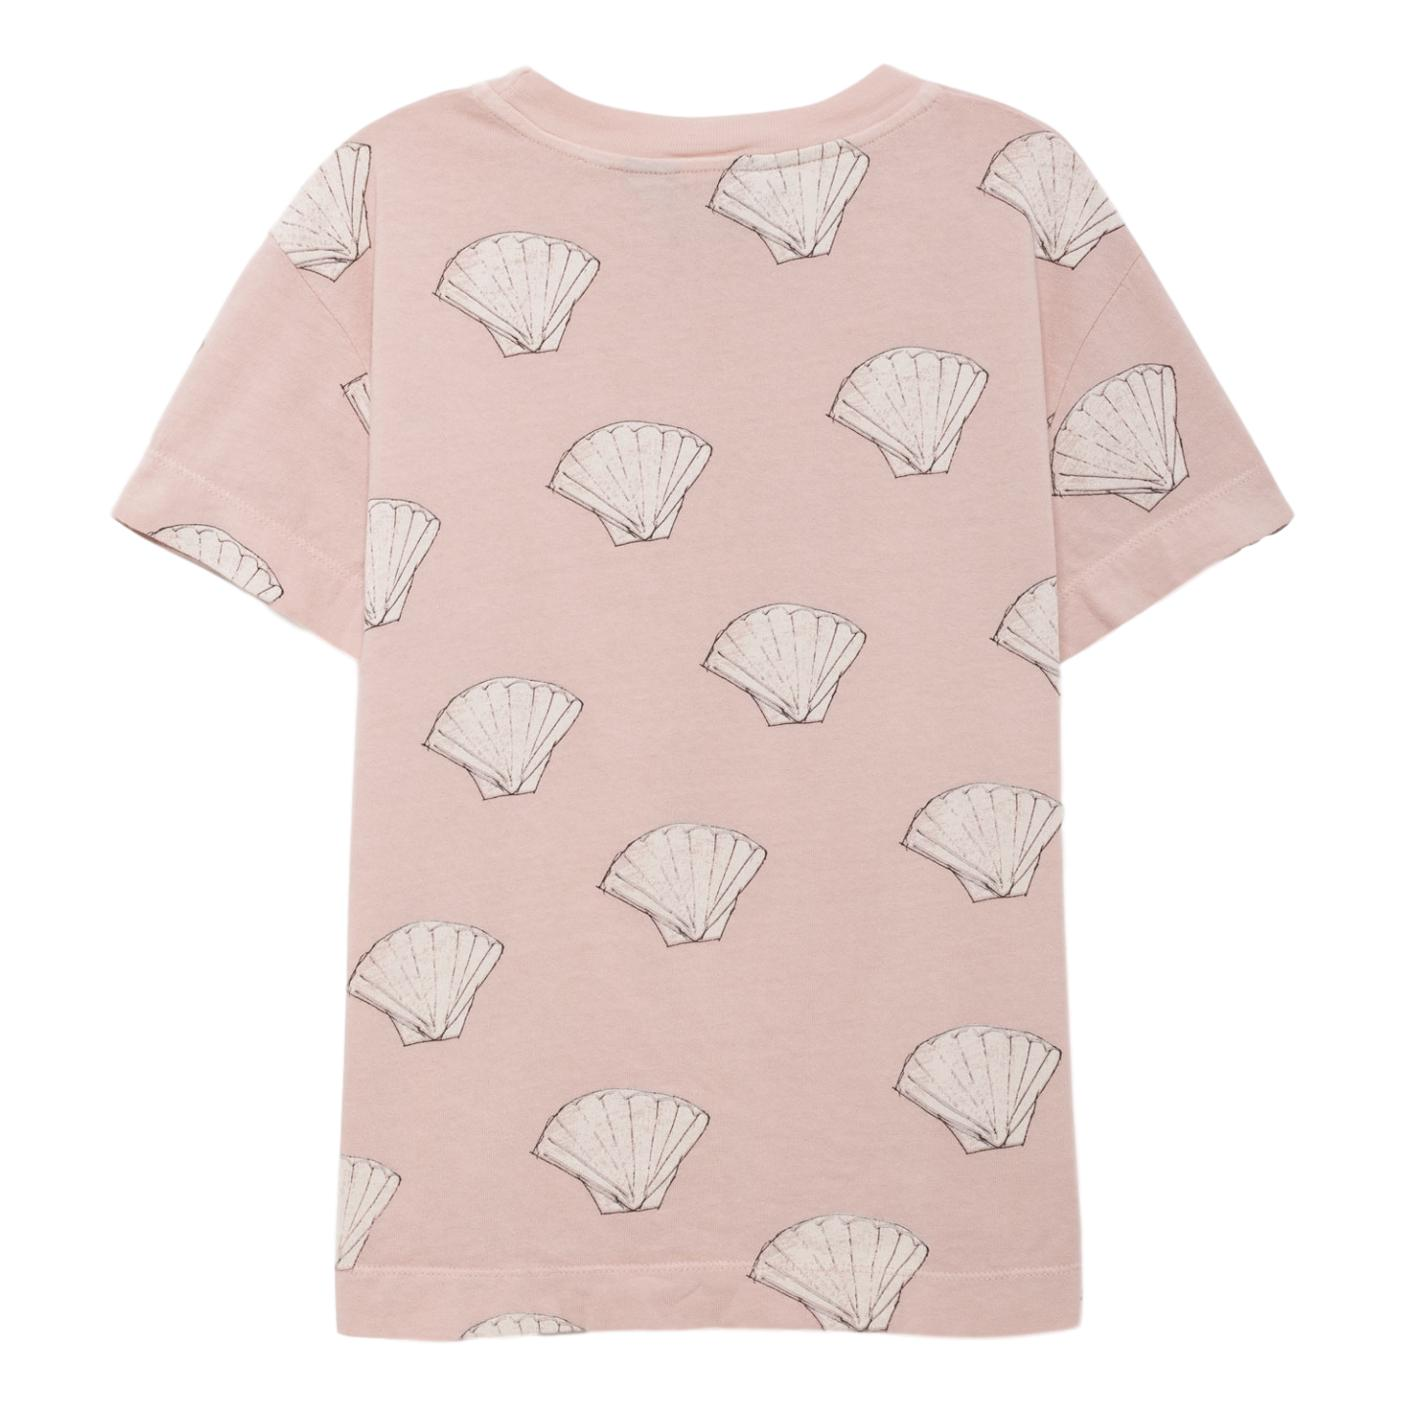 THE ANIMALS OBSERVATORY - Quartz Shells Rooster Kids Tee